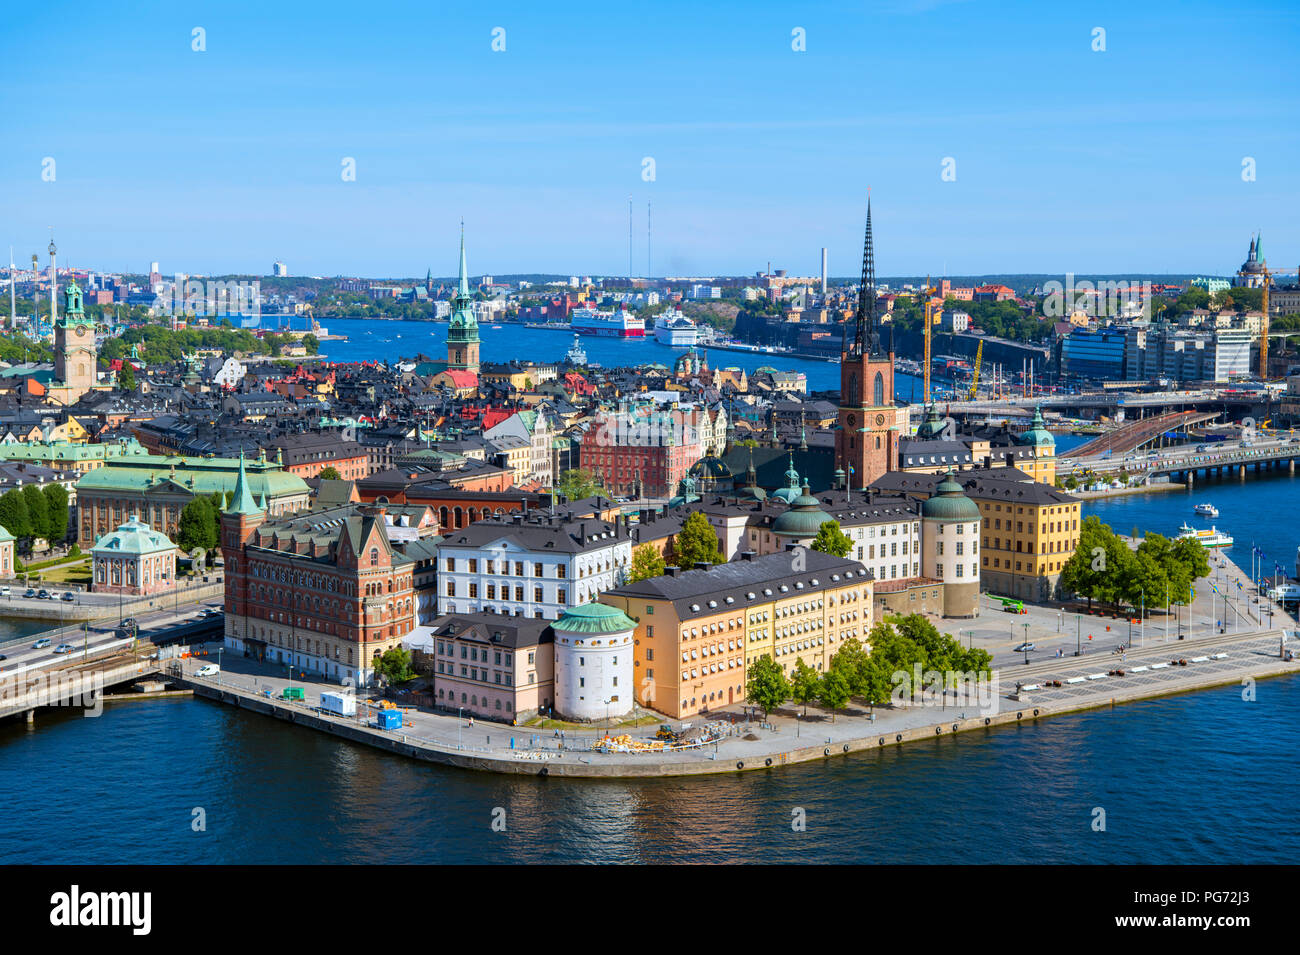 Aerial view of Riddarholmen and Gamla Stan (Old Town) from the Tower of Stockholm City Hall (Stadshuset), Kungsholmen, Stockholm, Sweden - Stock Image